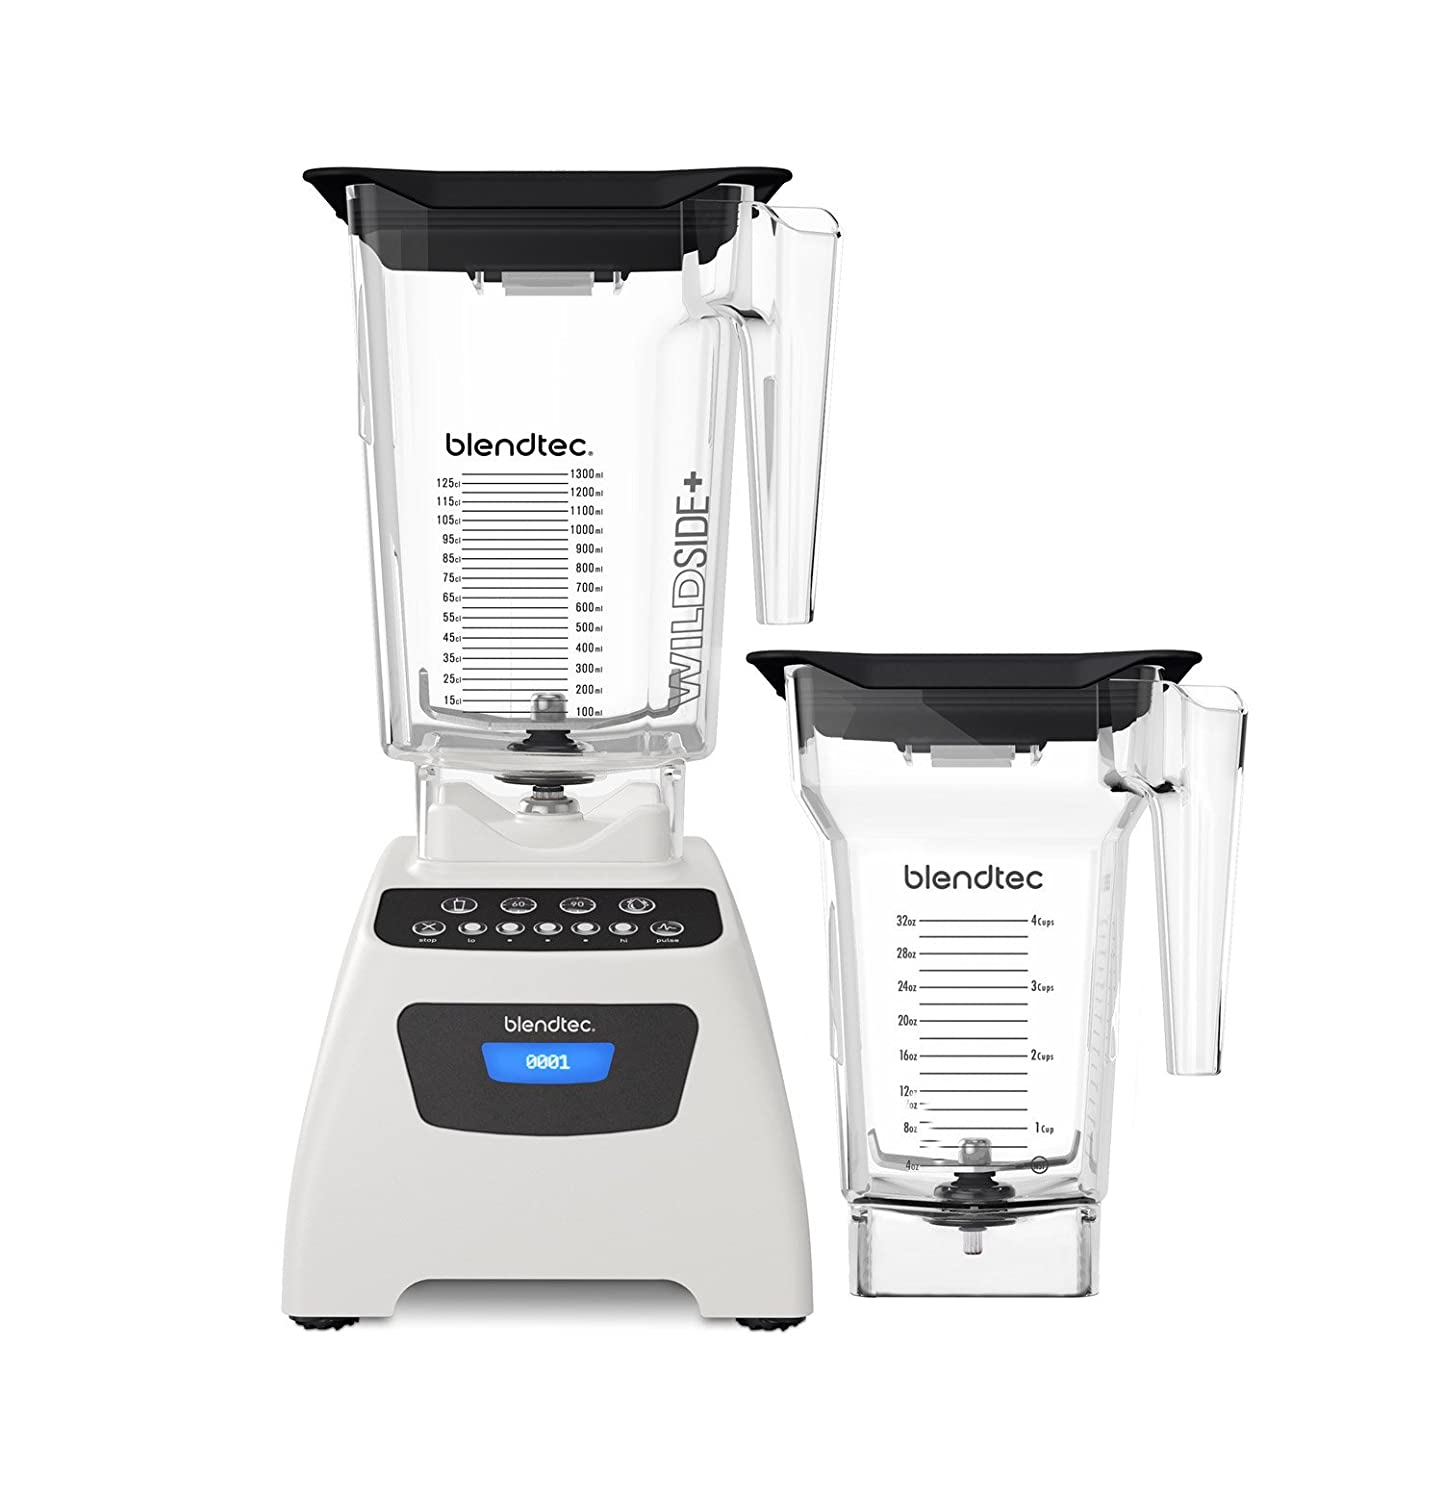 Blendtec Classic 575 Blender - WildSide+ Jar (90 oz) and FourSide Jar (75 oz) BUNDLE - Professional-Grade Power - Self-Cleaning - 4 Pre-programmed Cycles - 5-Speeds - Polar White